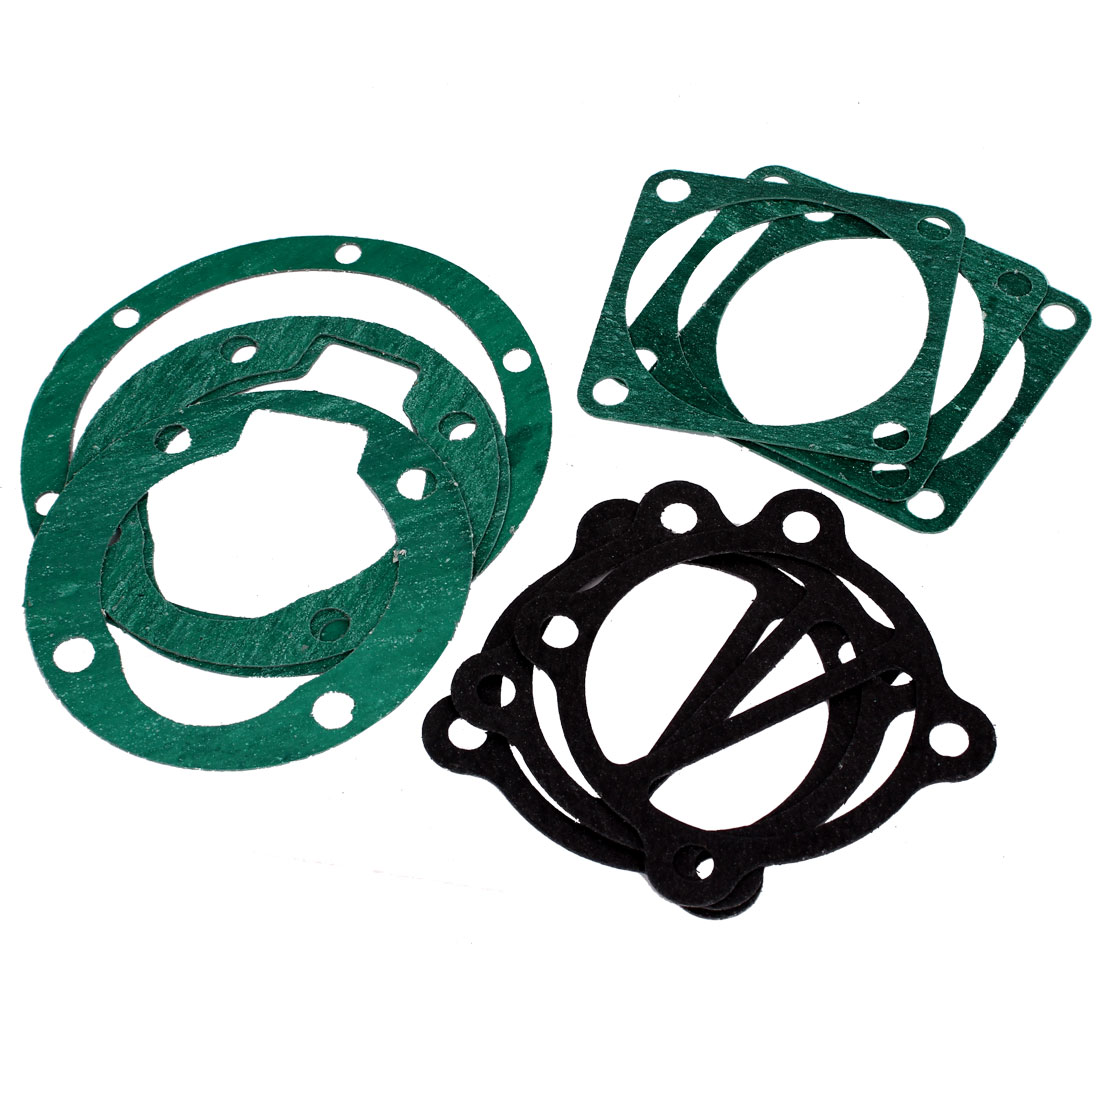 10 in 1 Industrial Air Compressor Cylinder Base Head Gaskets